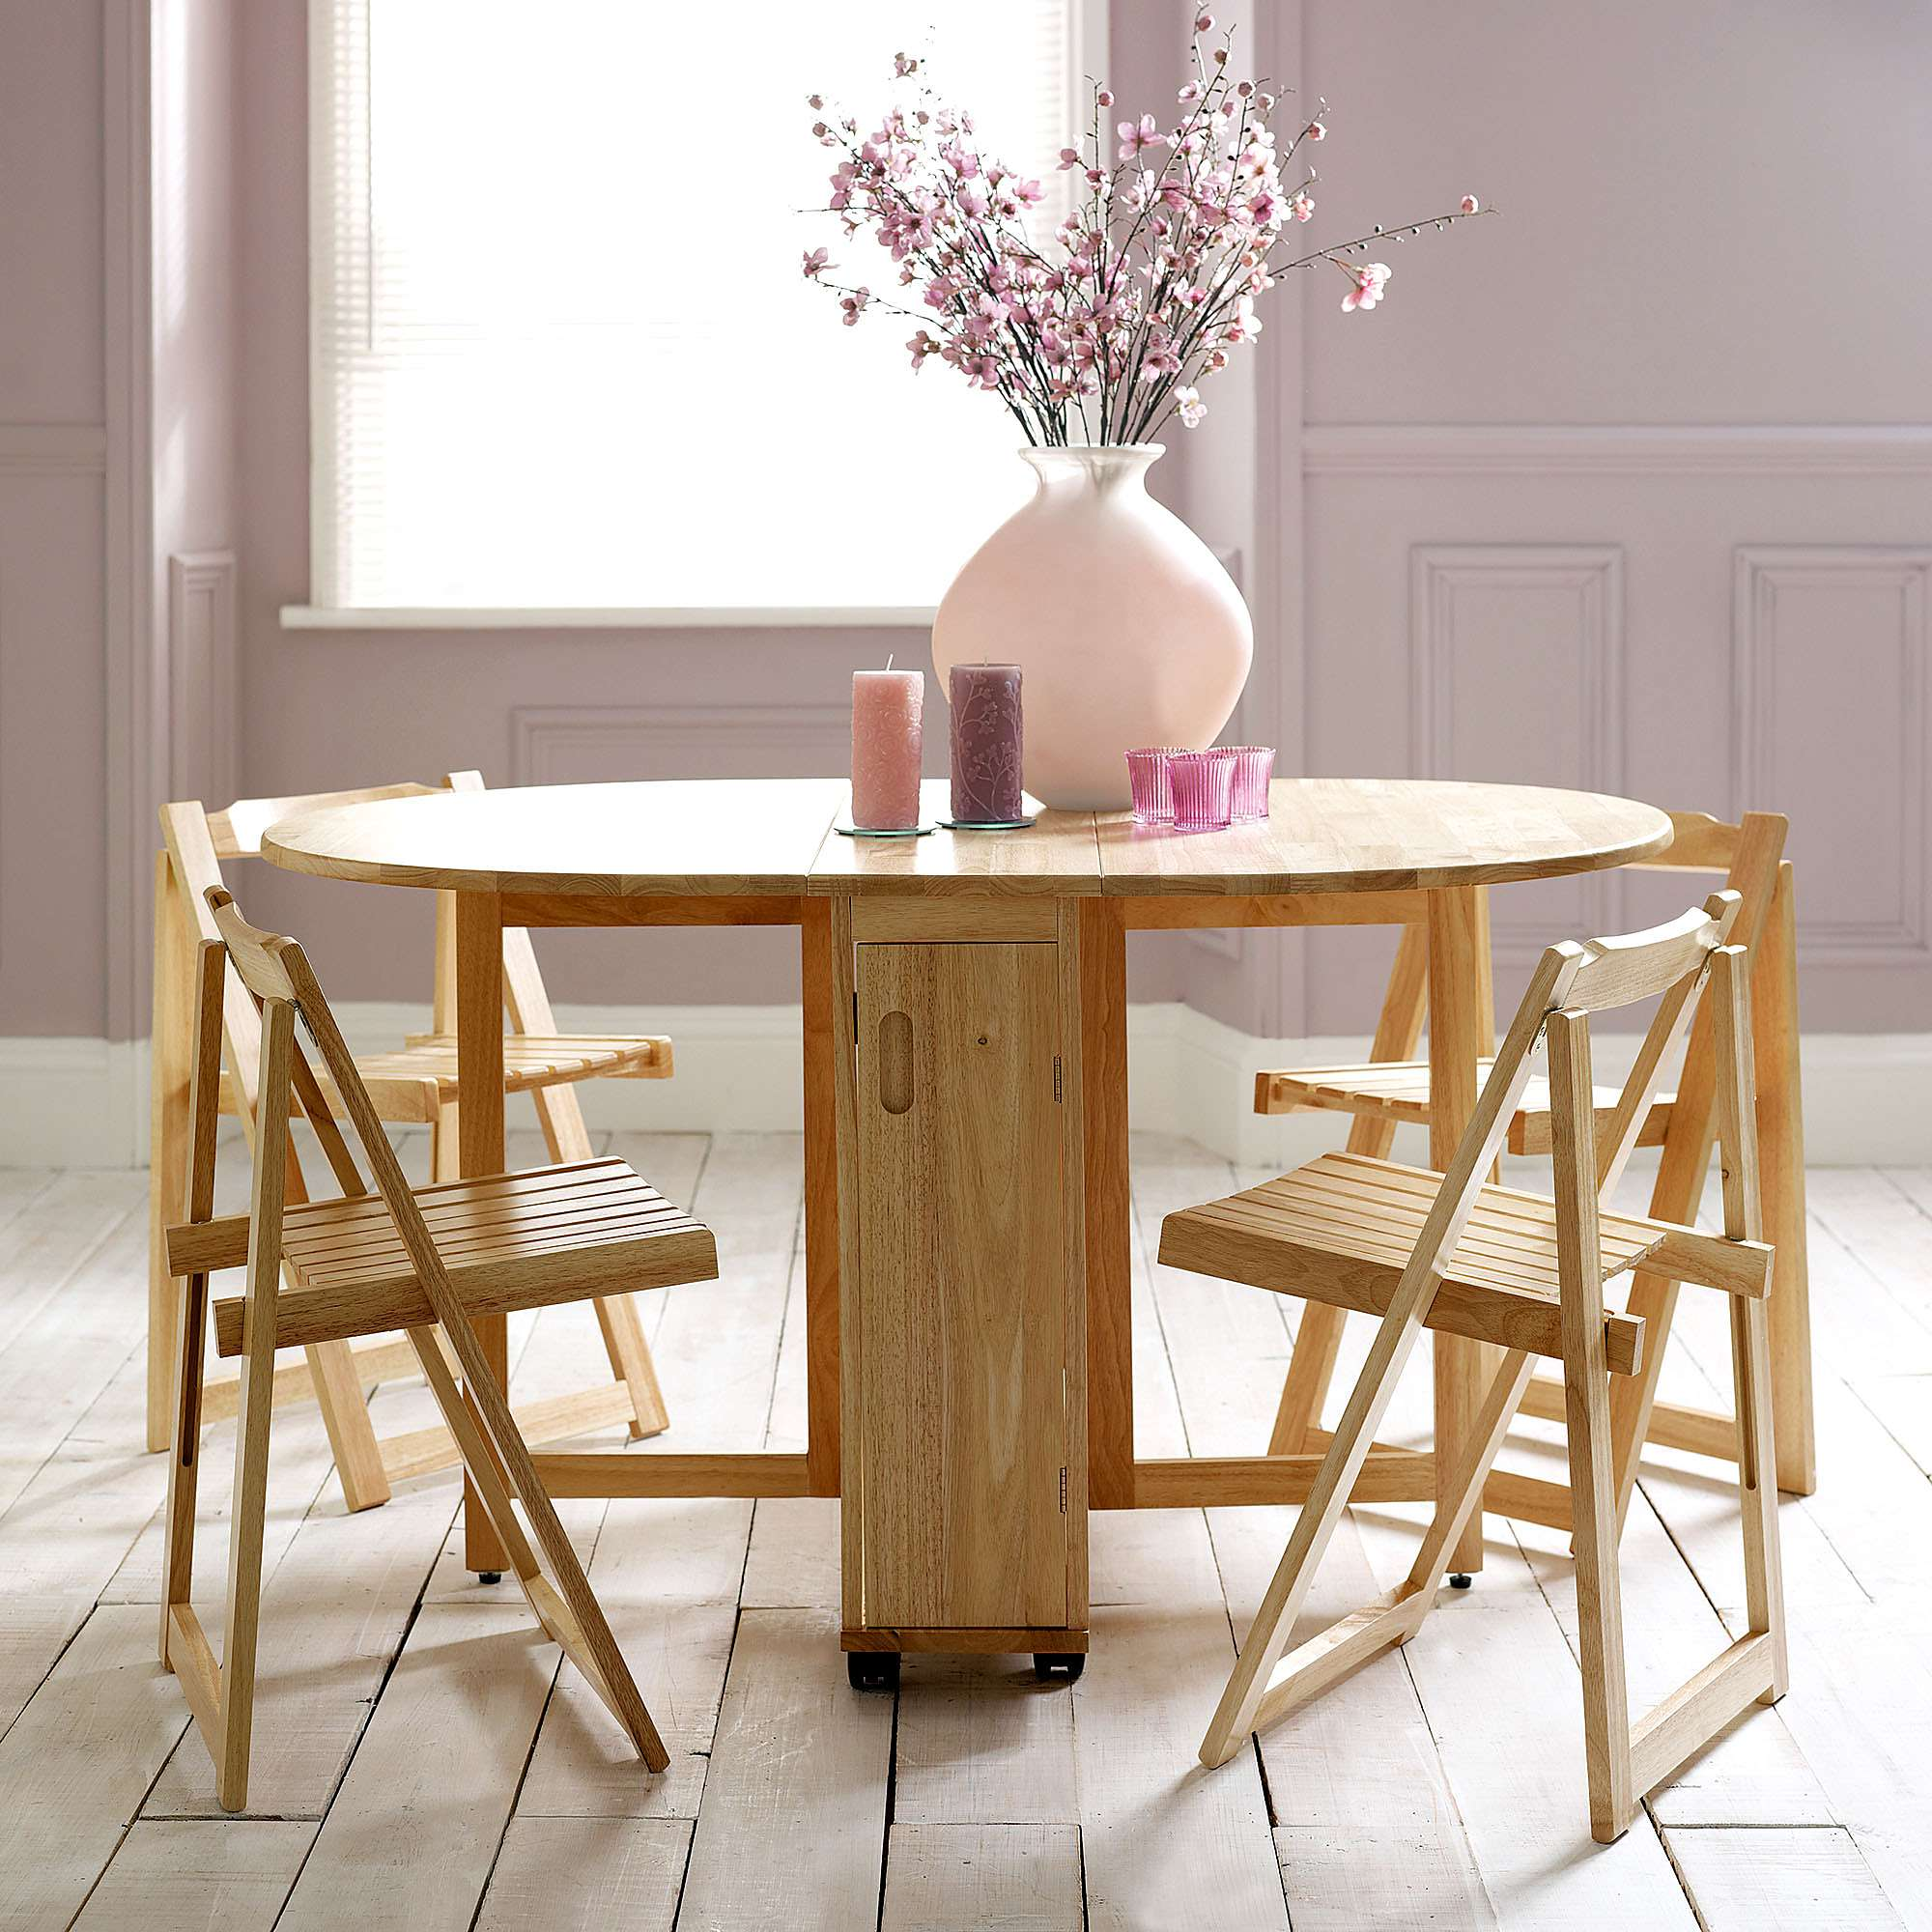 Choose a Folding Dining Table for a Small Space Adorable Home